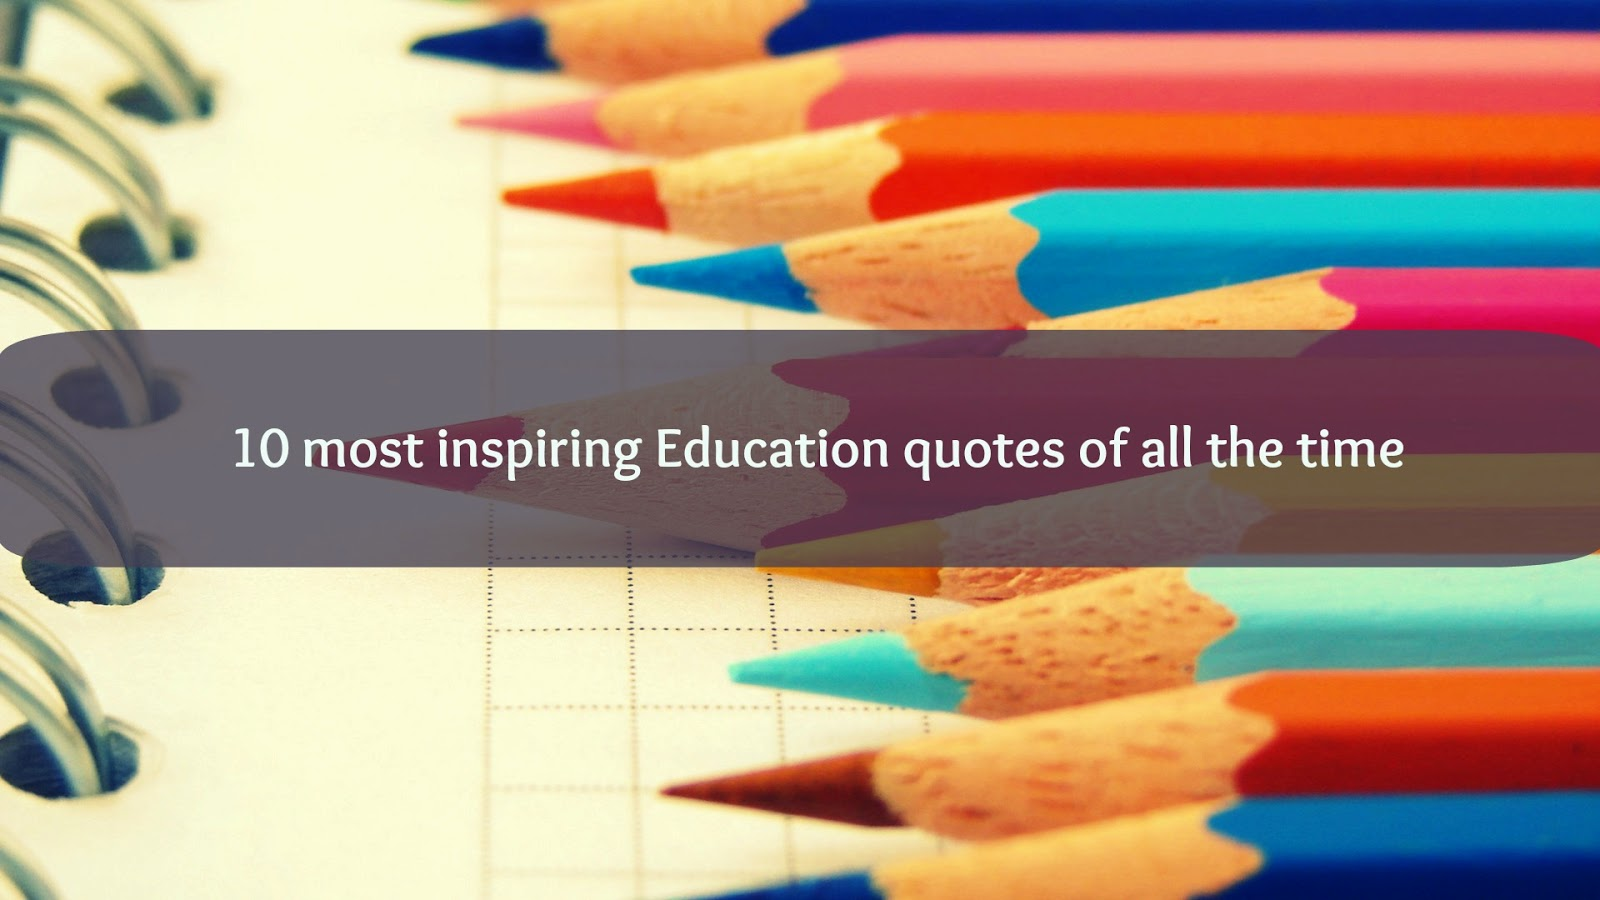 Hd wallpaper education - Inspiring Education Quotes